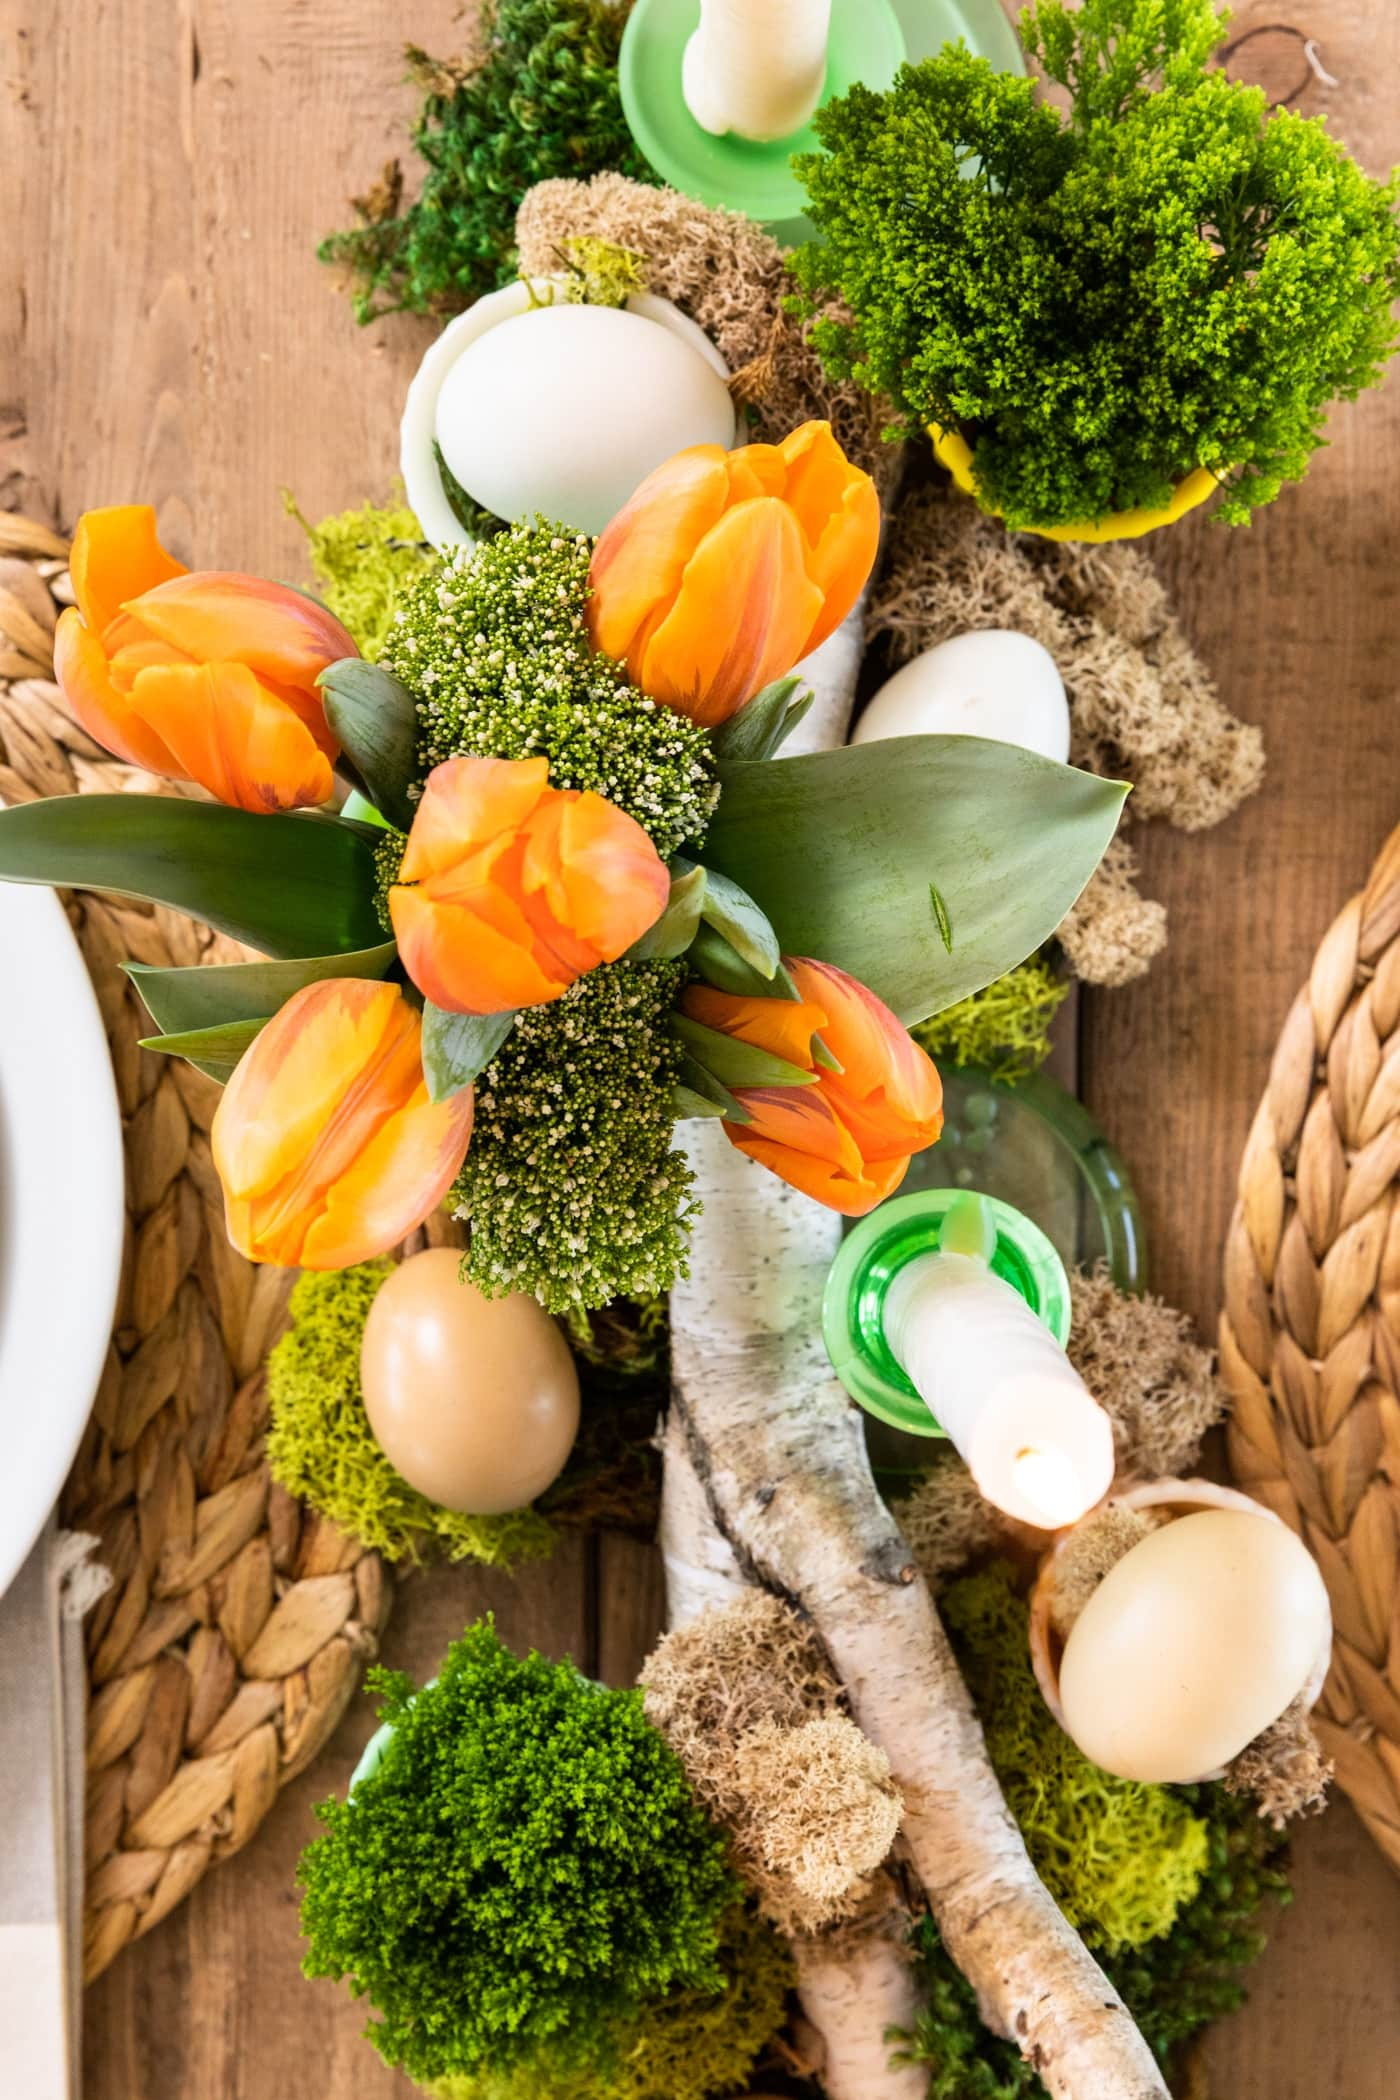 Top down view of tabletop with green moss, orange tulips, birch log, and set with plates